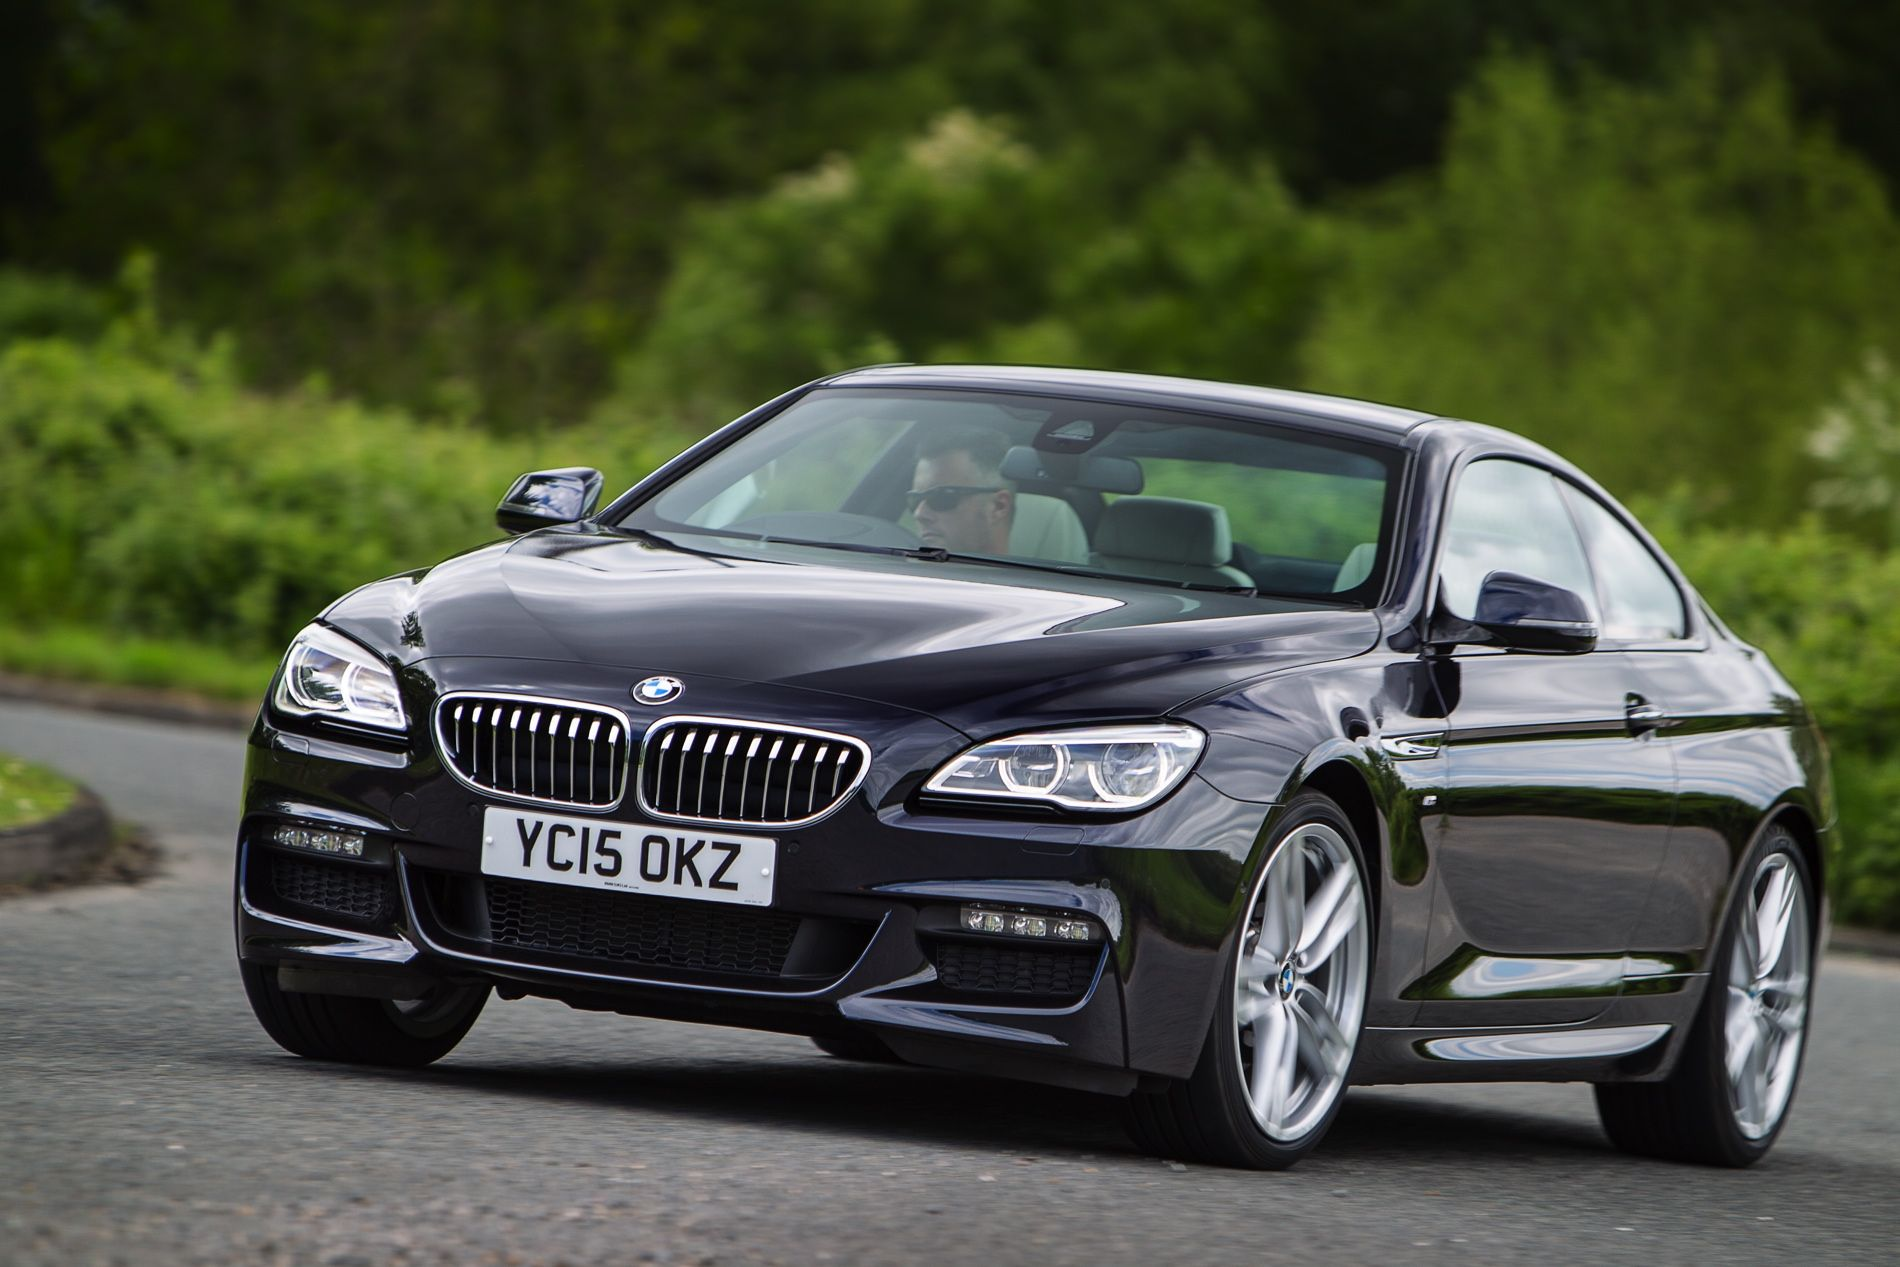 Ranking the best looking bmw 6 series coupes http www bmwblog